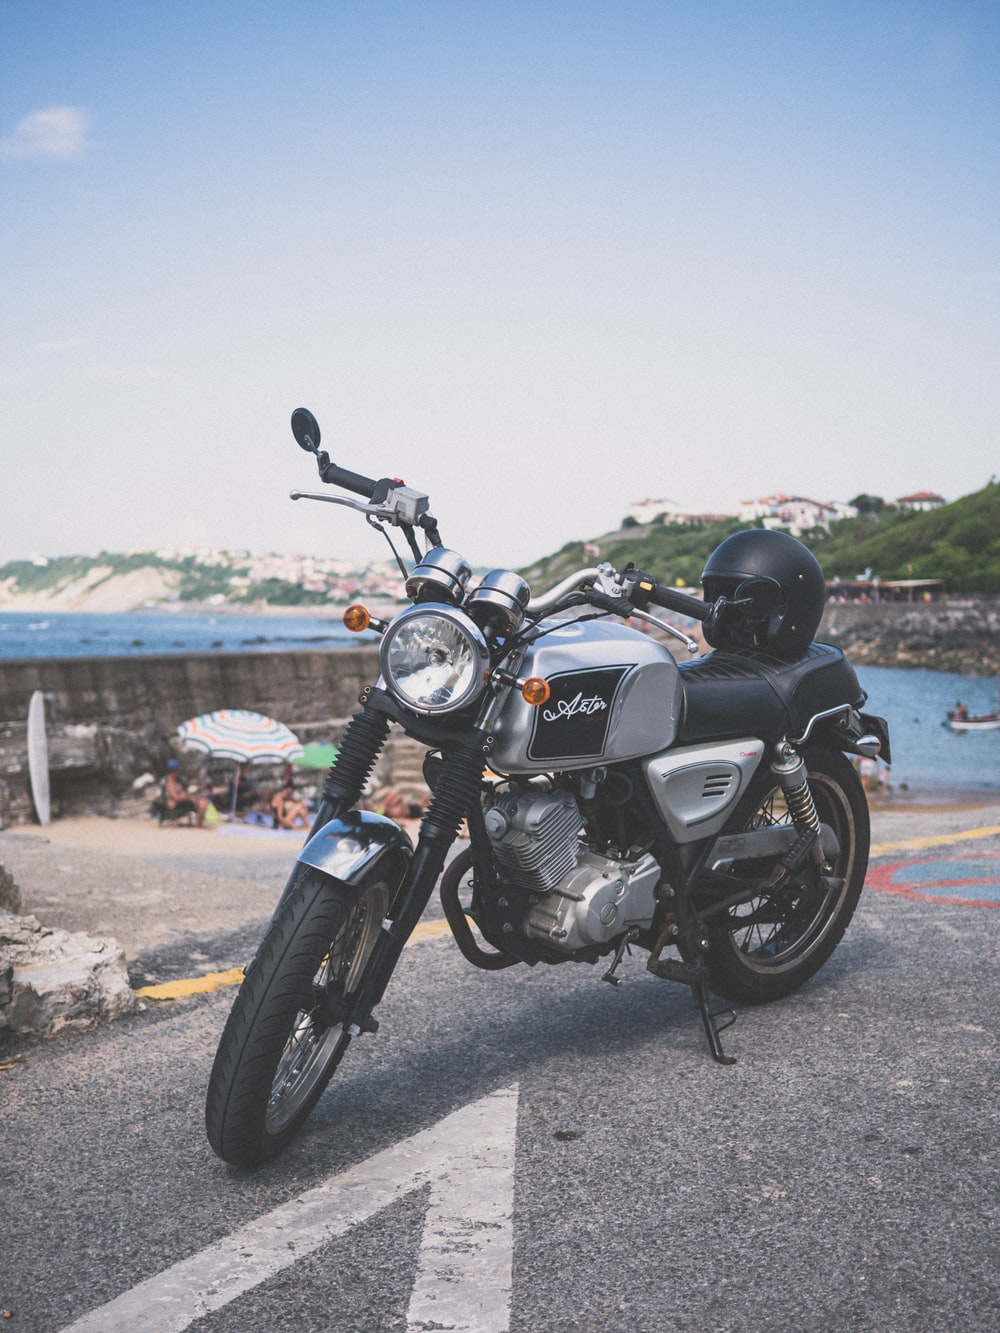 gray standard motorcycle parked far away from body of water